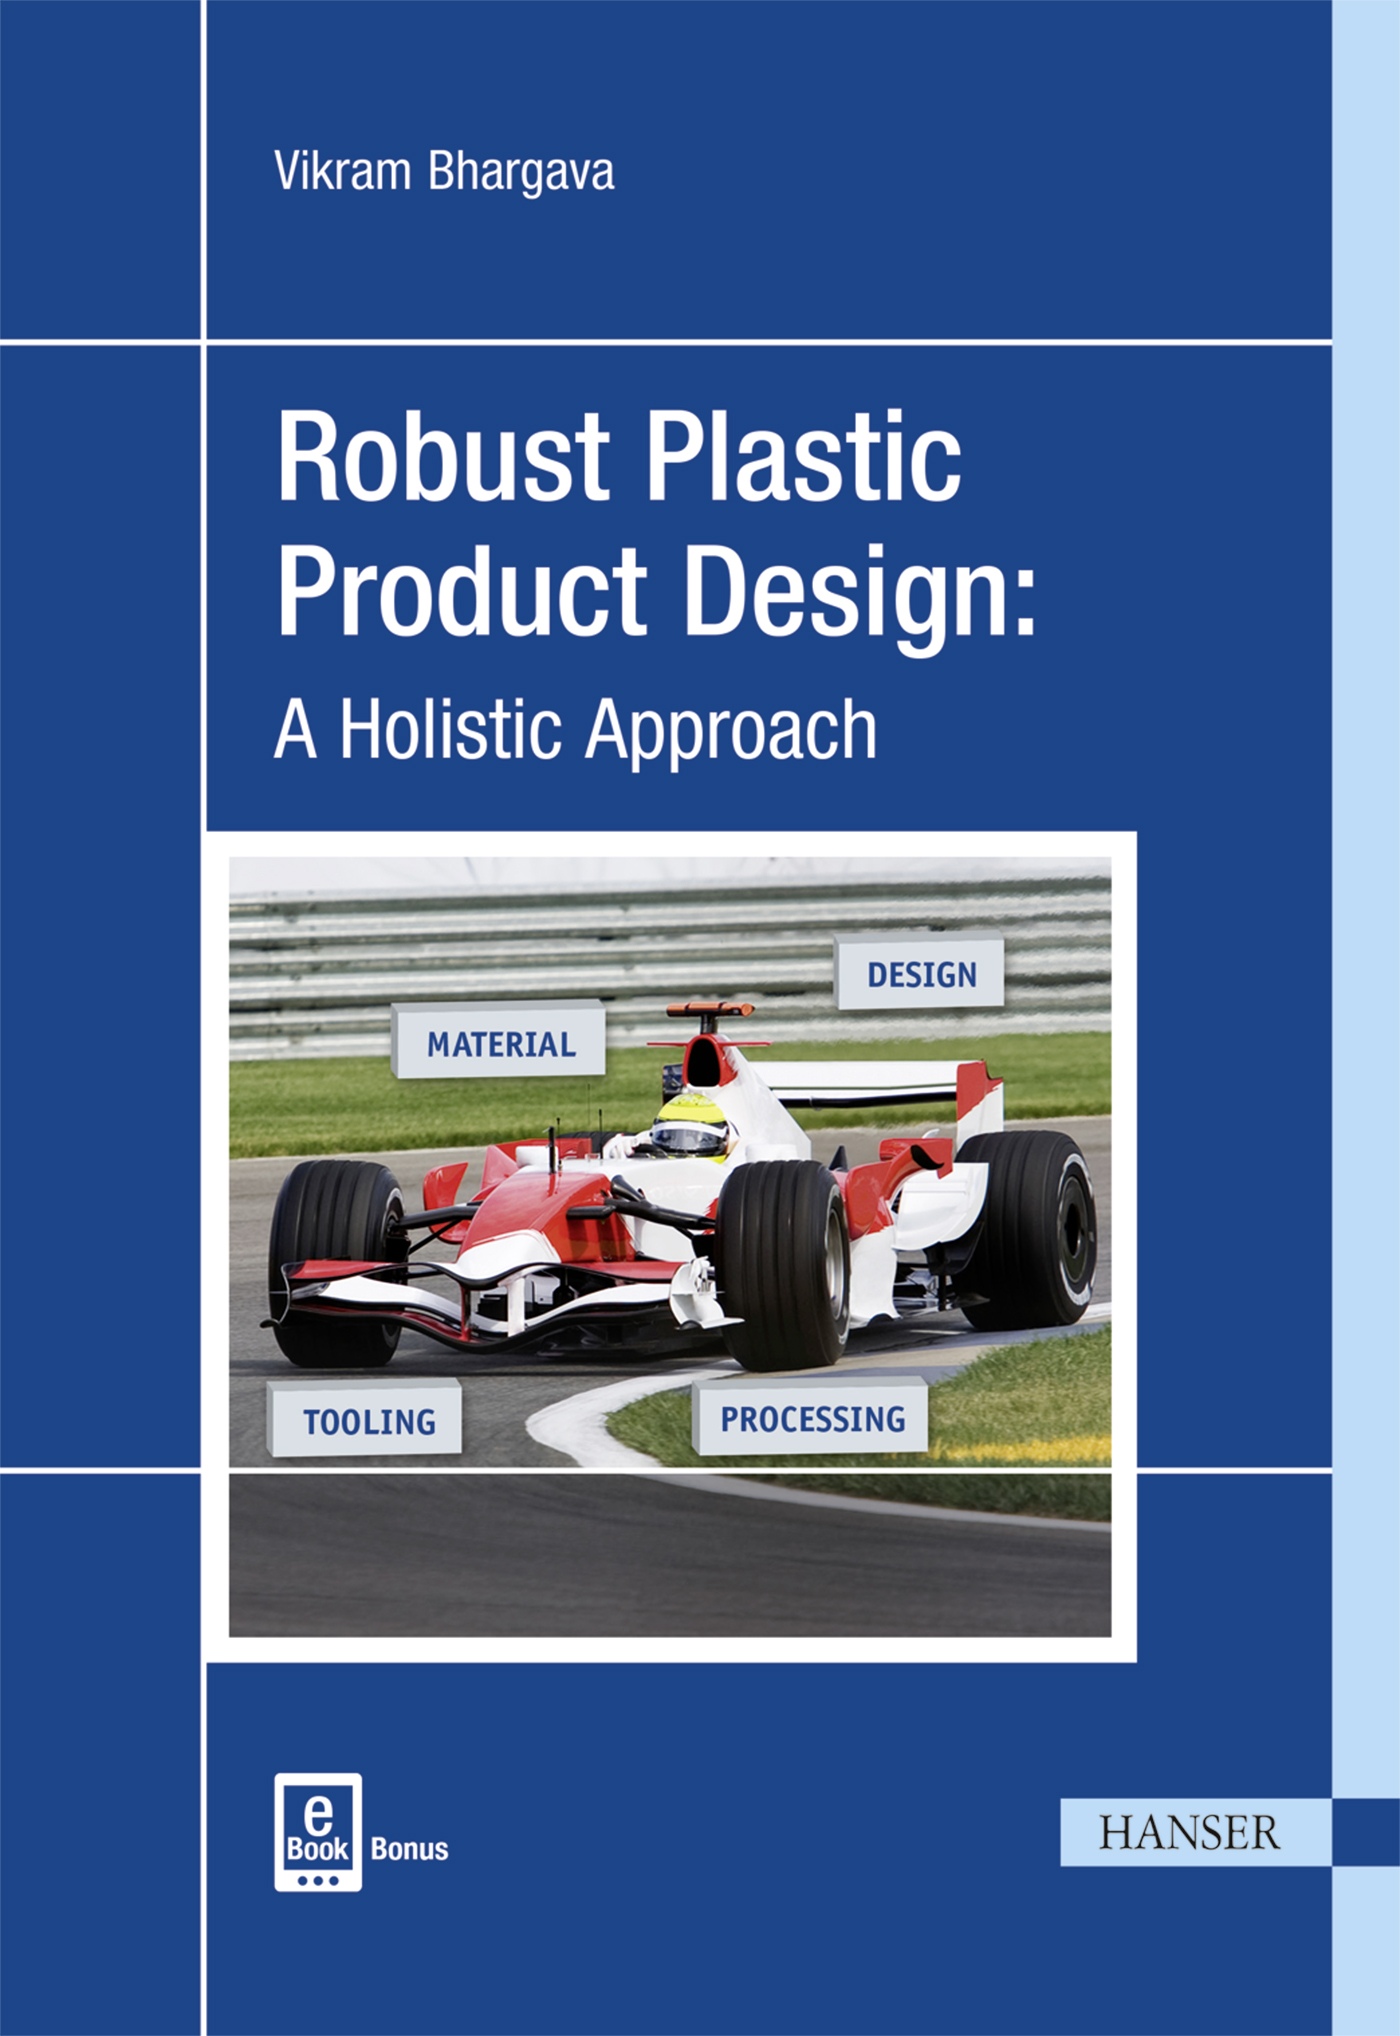 Bhargava, Robust Plastic Product Design: A Holistic Approach, 978-1-56990-580-7